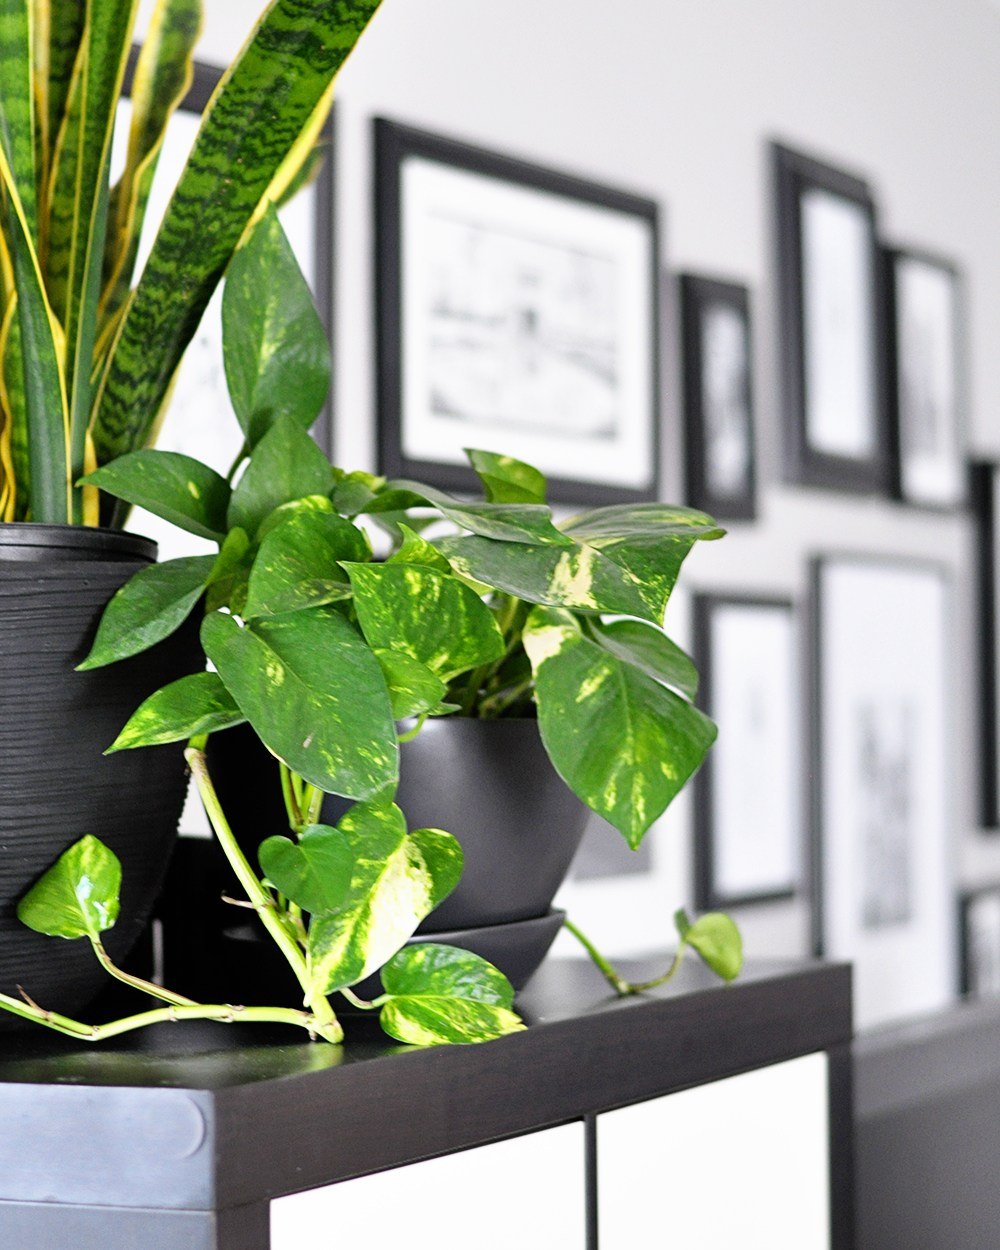 These Are The Best Bedroom Plants to Help You Get a Better Sleep 4